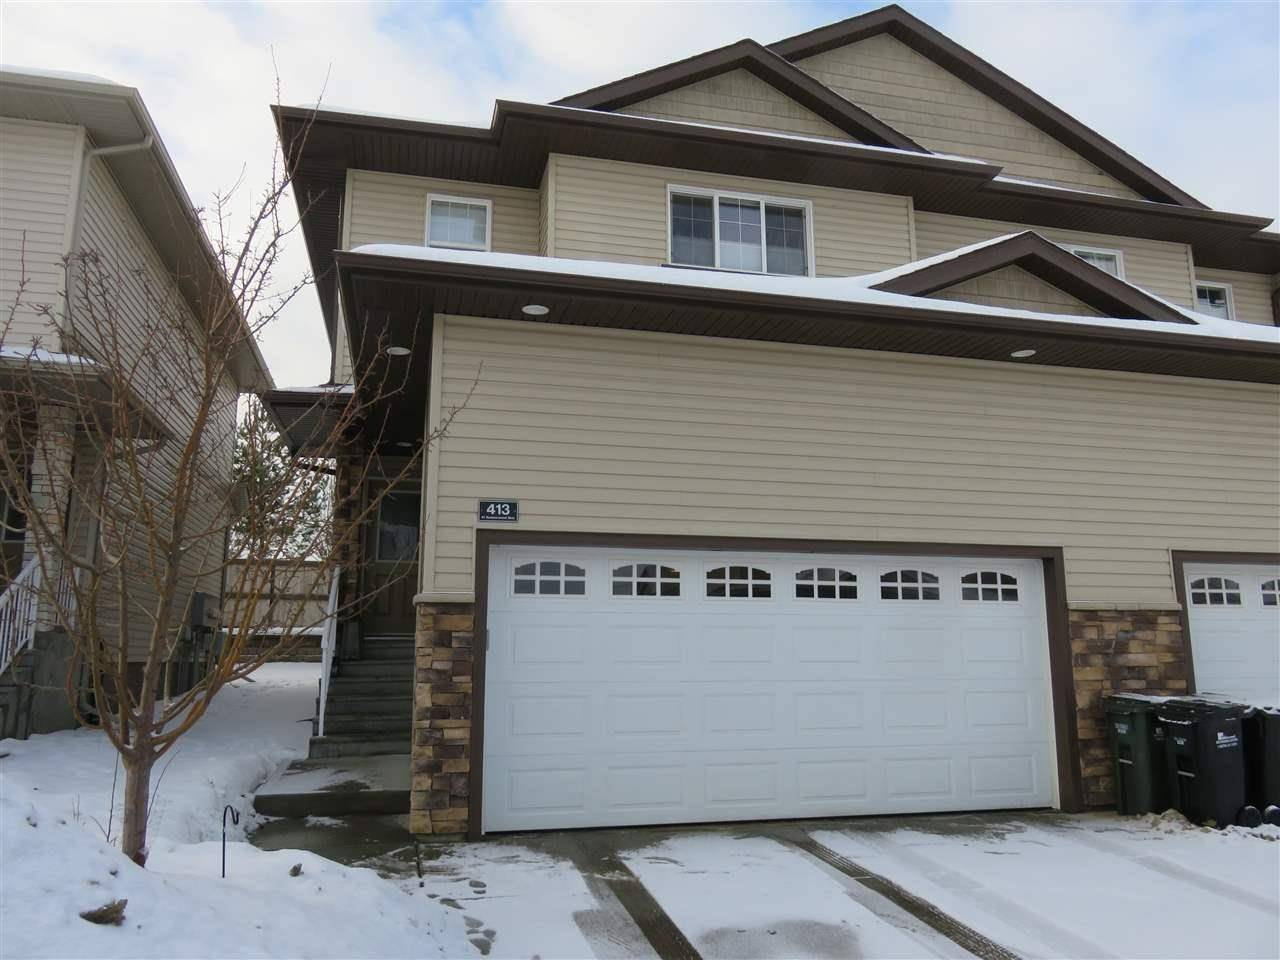 Townhouse for sale at 41 Summerwood Blvd Unit 413 Sherwood Park Alberta - MLS: E4186399